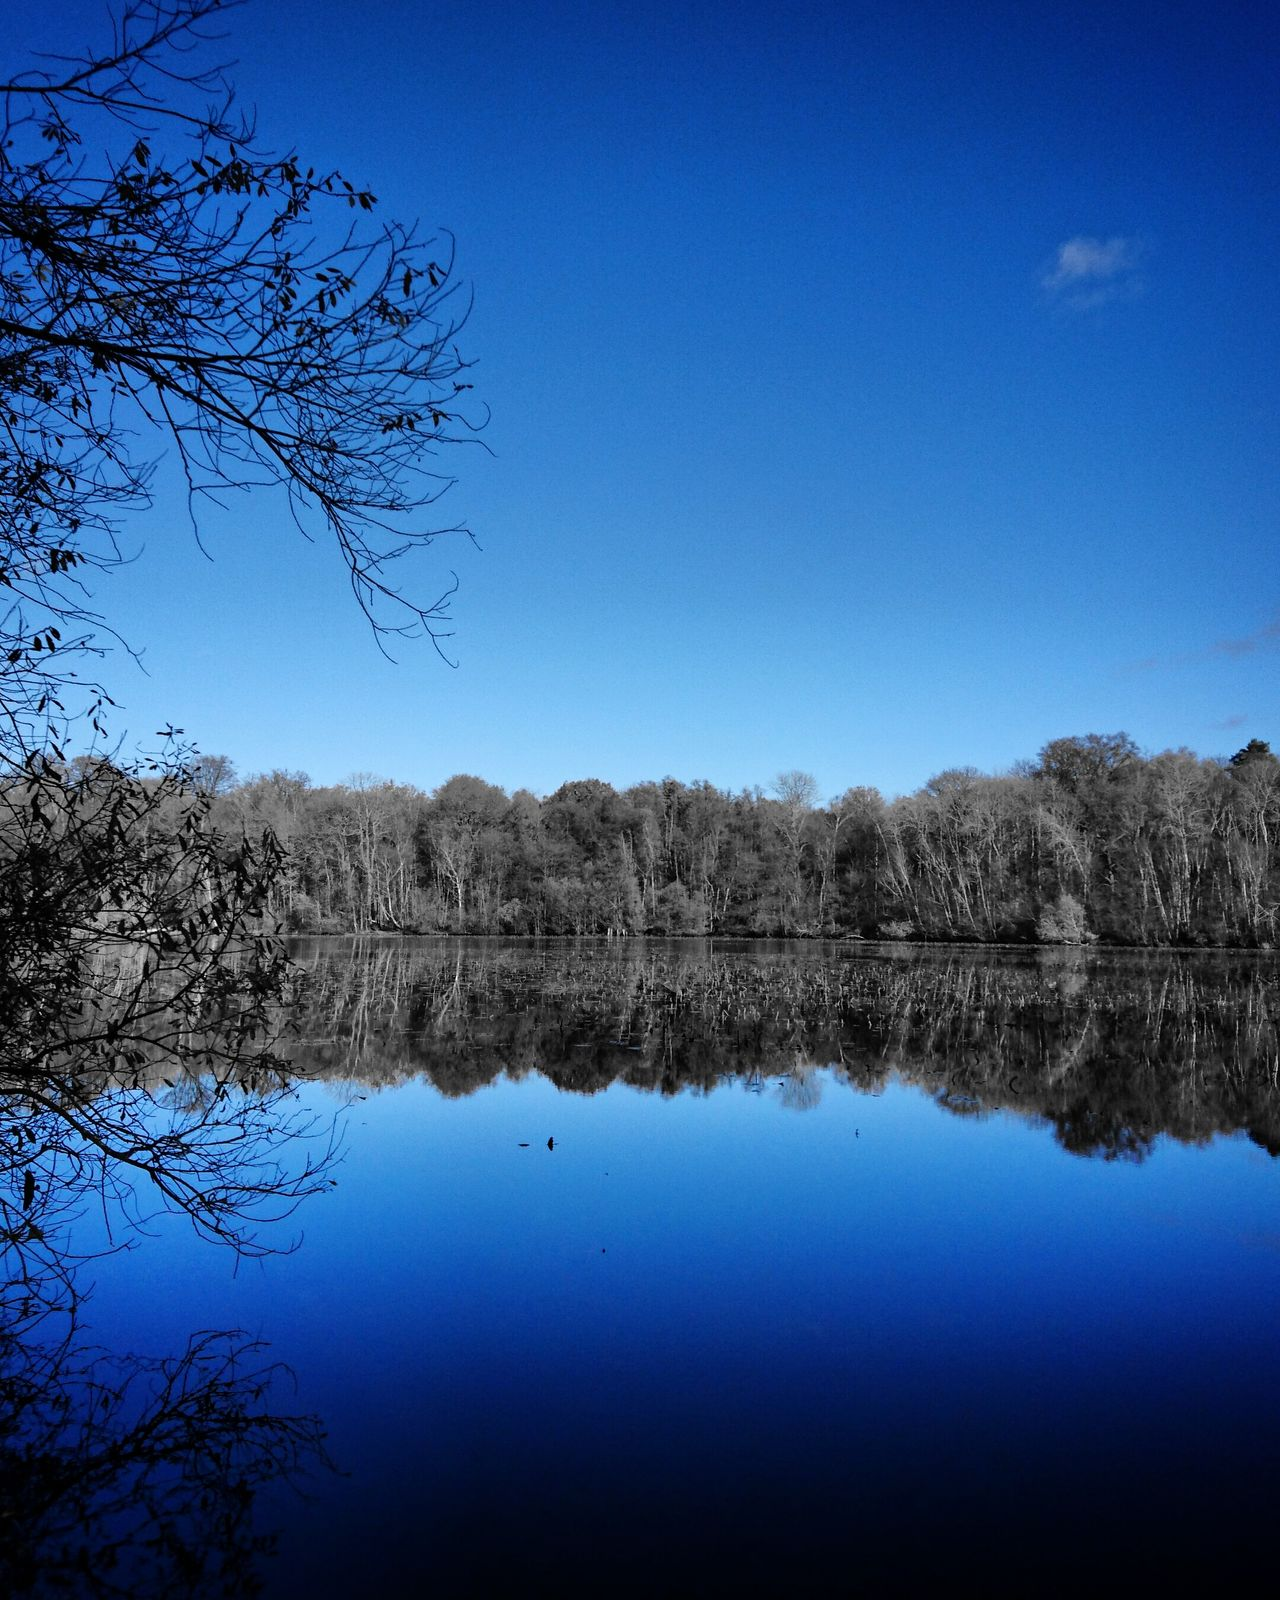 Noir et bleu. Splash Of Color Reflection Water Nature Tree Tranquility Idyllic Sky Lake Beauty In Nature Scenics Clear Sky Tranquil Scene No People Outdoors Reflection Lake Day Serenity Beauty In Nature Splashcolor